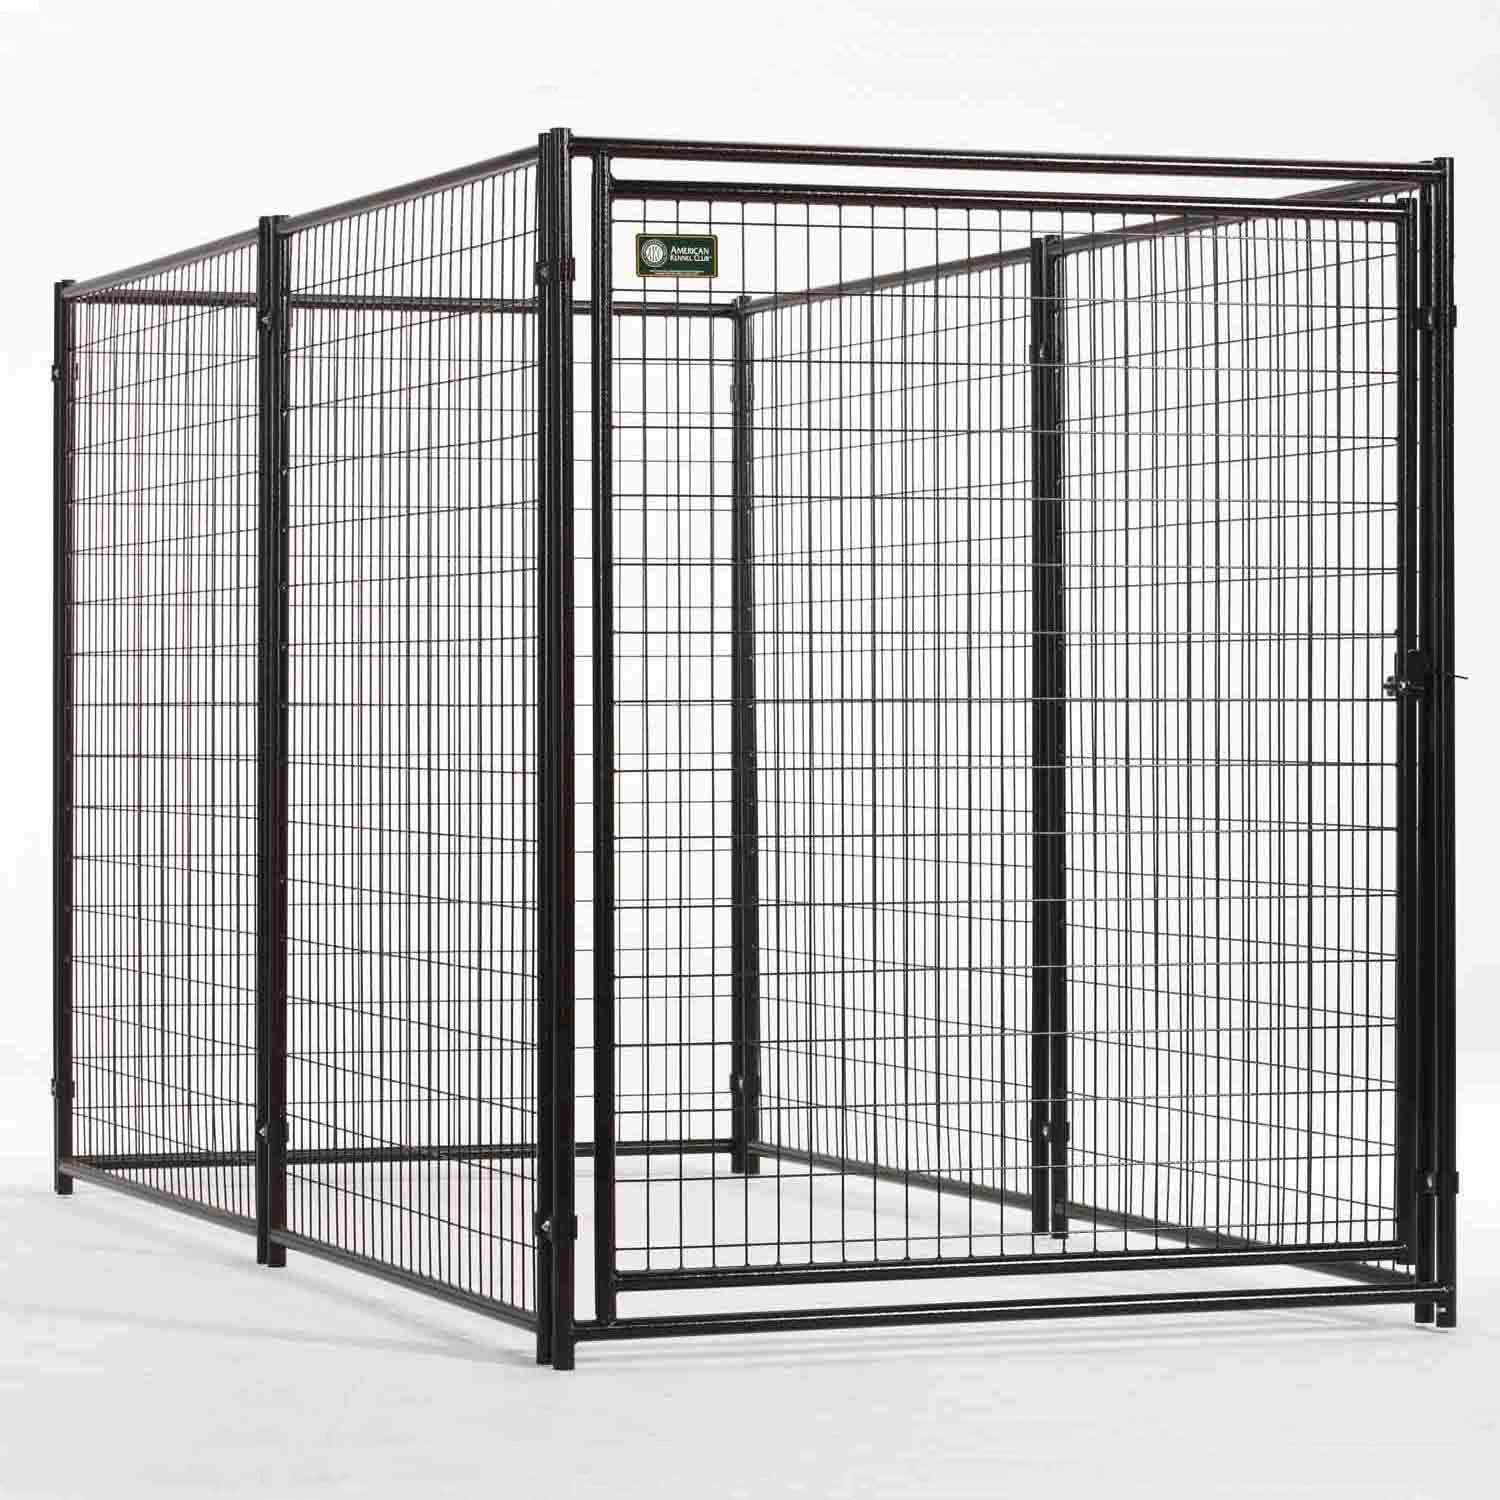 Lucky+Dog+Powder-Coated+Kennel+-+10\'+L+X+5\'+W+X+6\'+H.+This+kennel+is ...